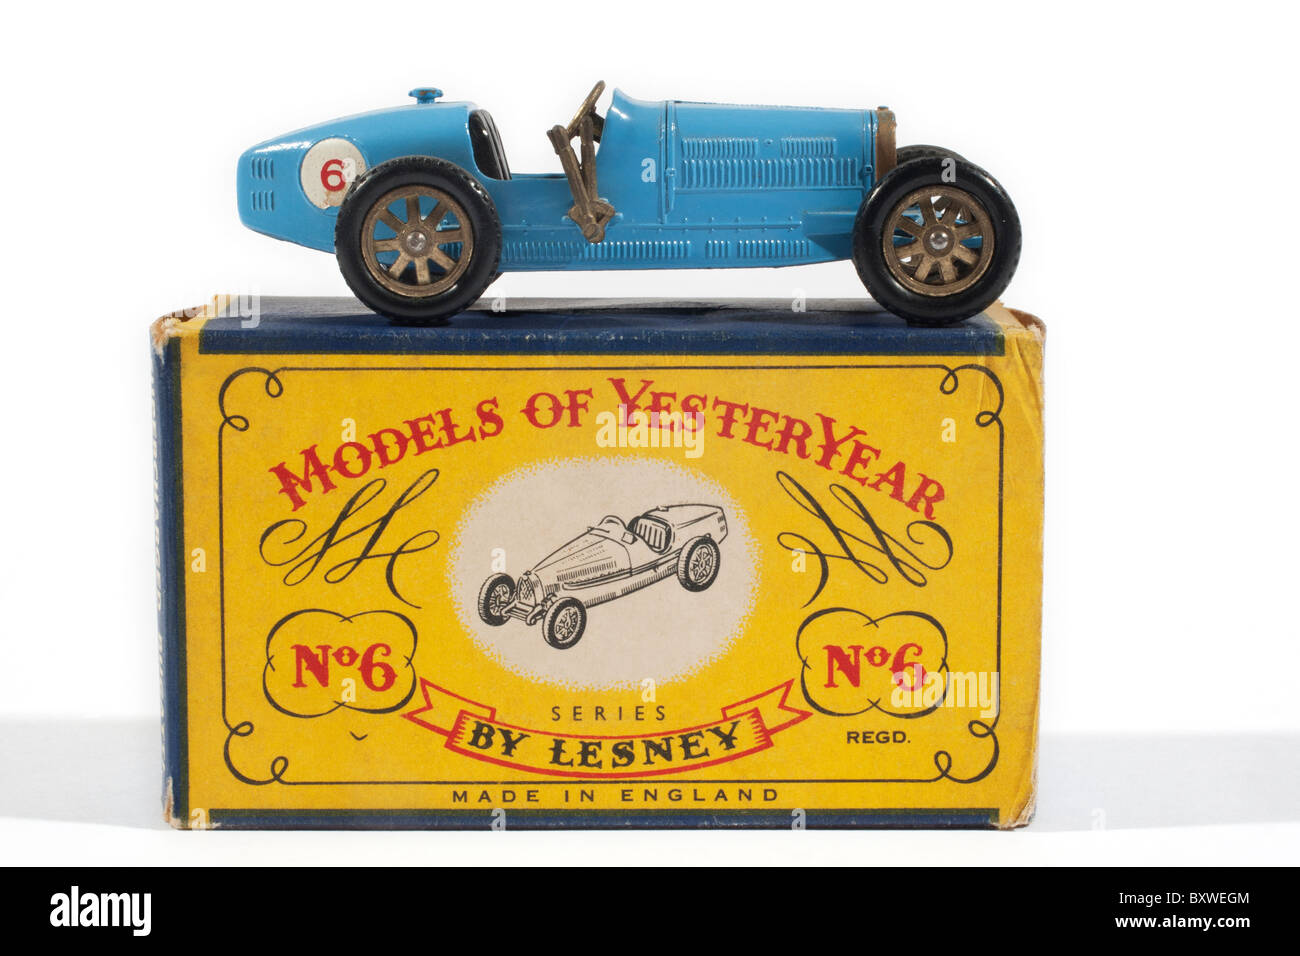 Models of Yesteryear 1926 Type 35 Bugatti Issued in 1961 and produced by Lesney Company in England - Stock Image